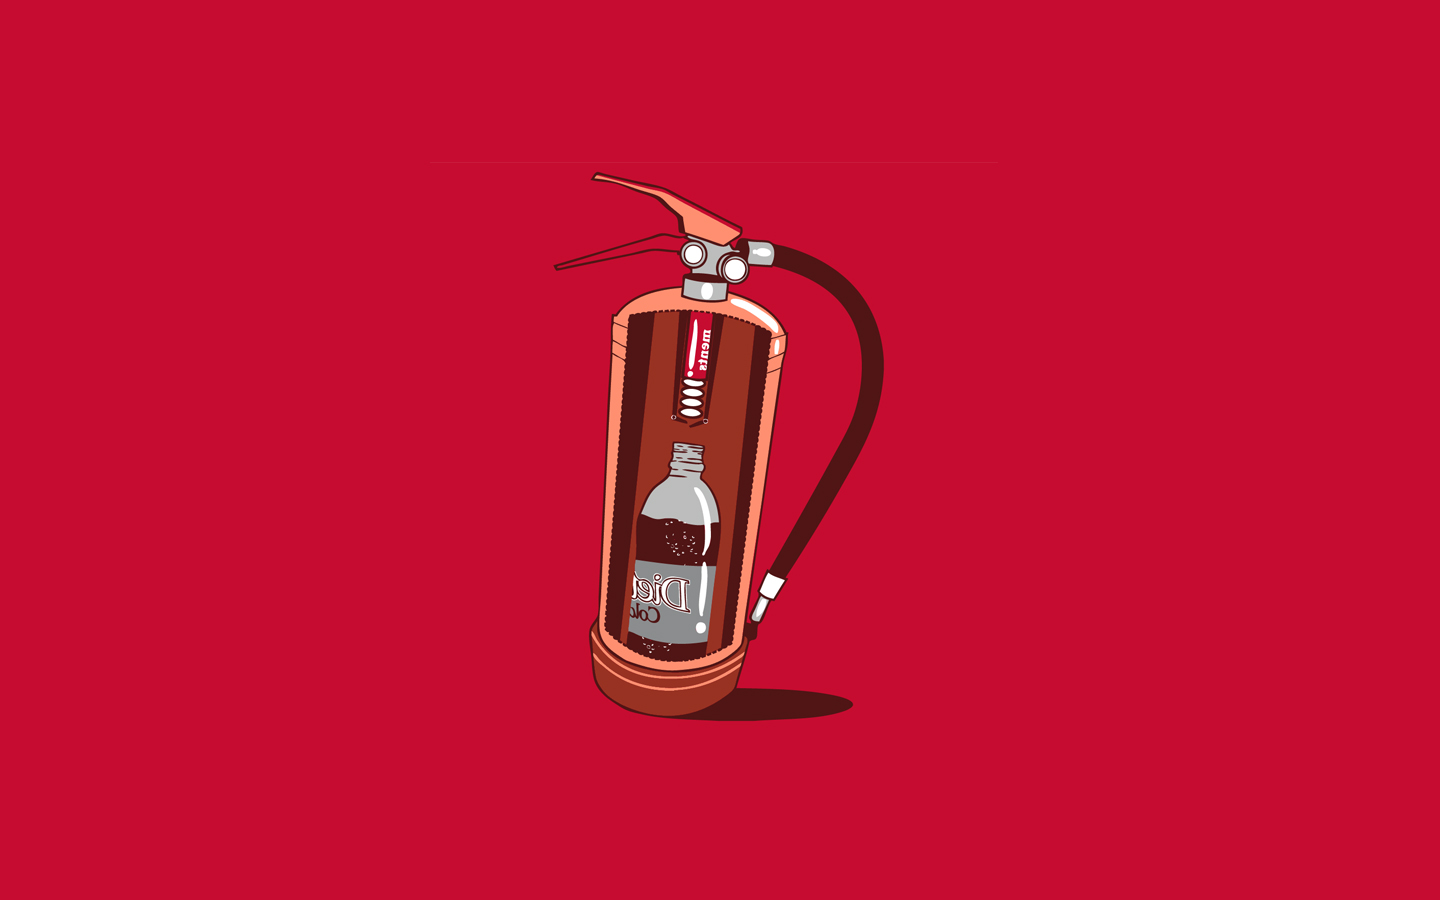 13143-threadless-simple-minimalism-humor-fire_extinguishers-coca-cola-mentos-red